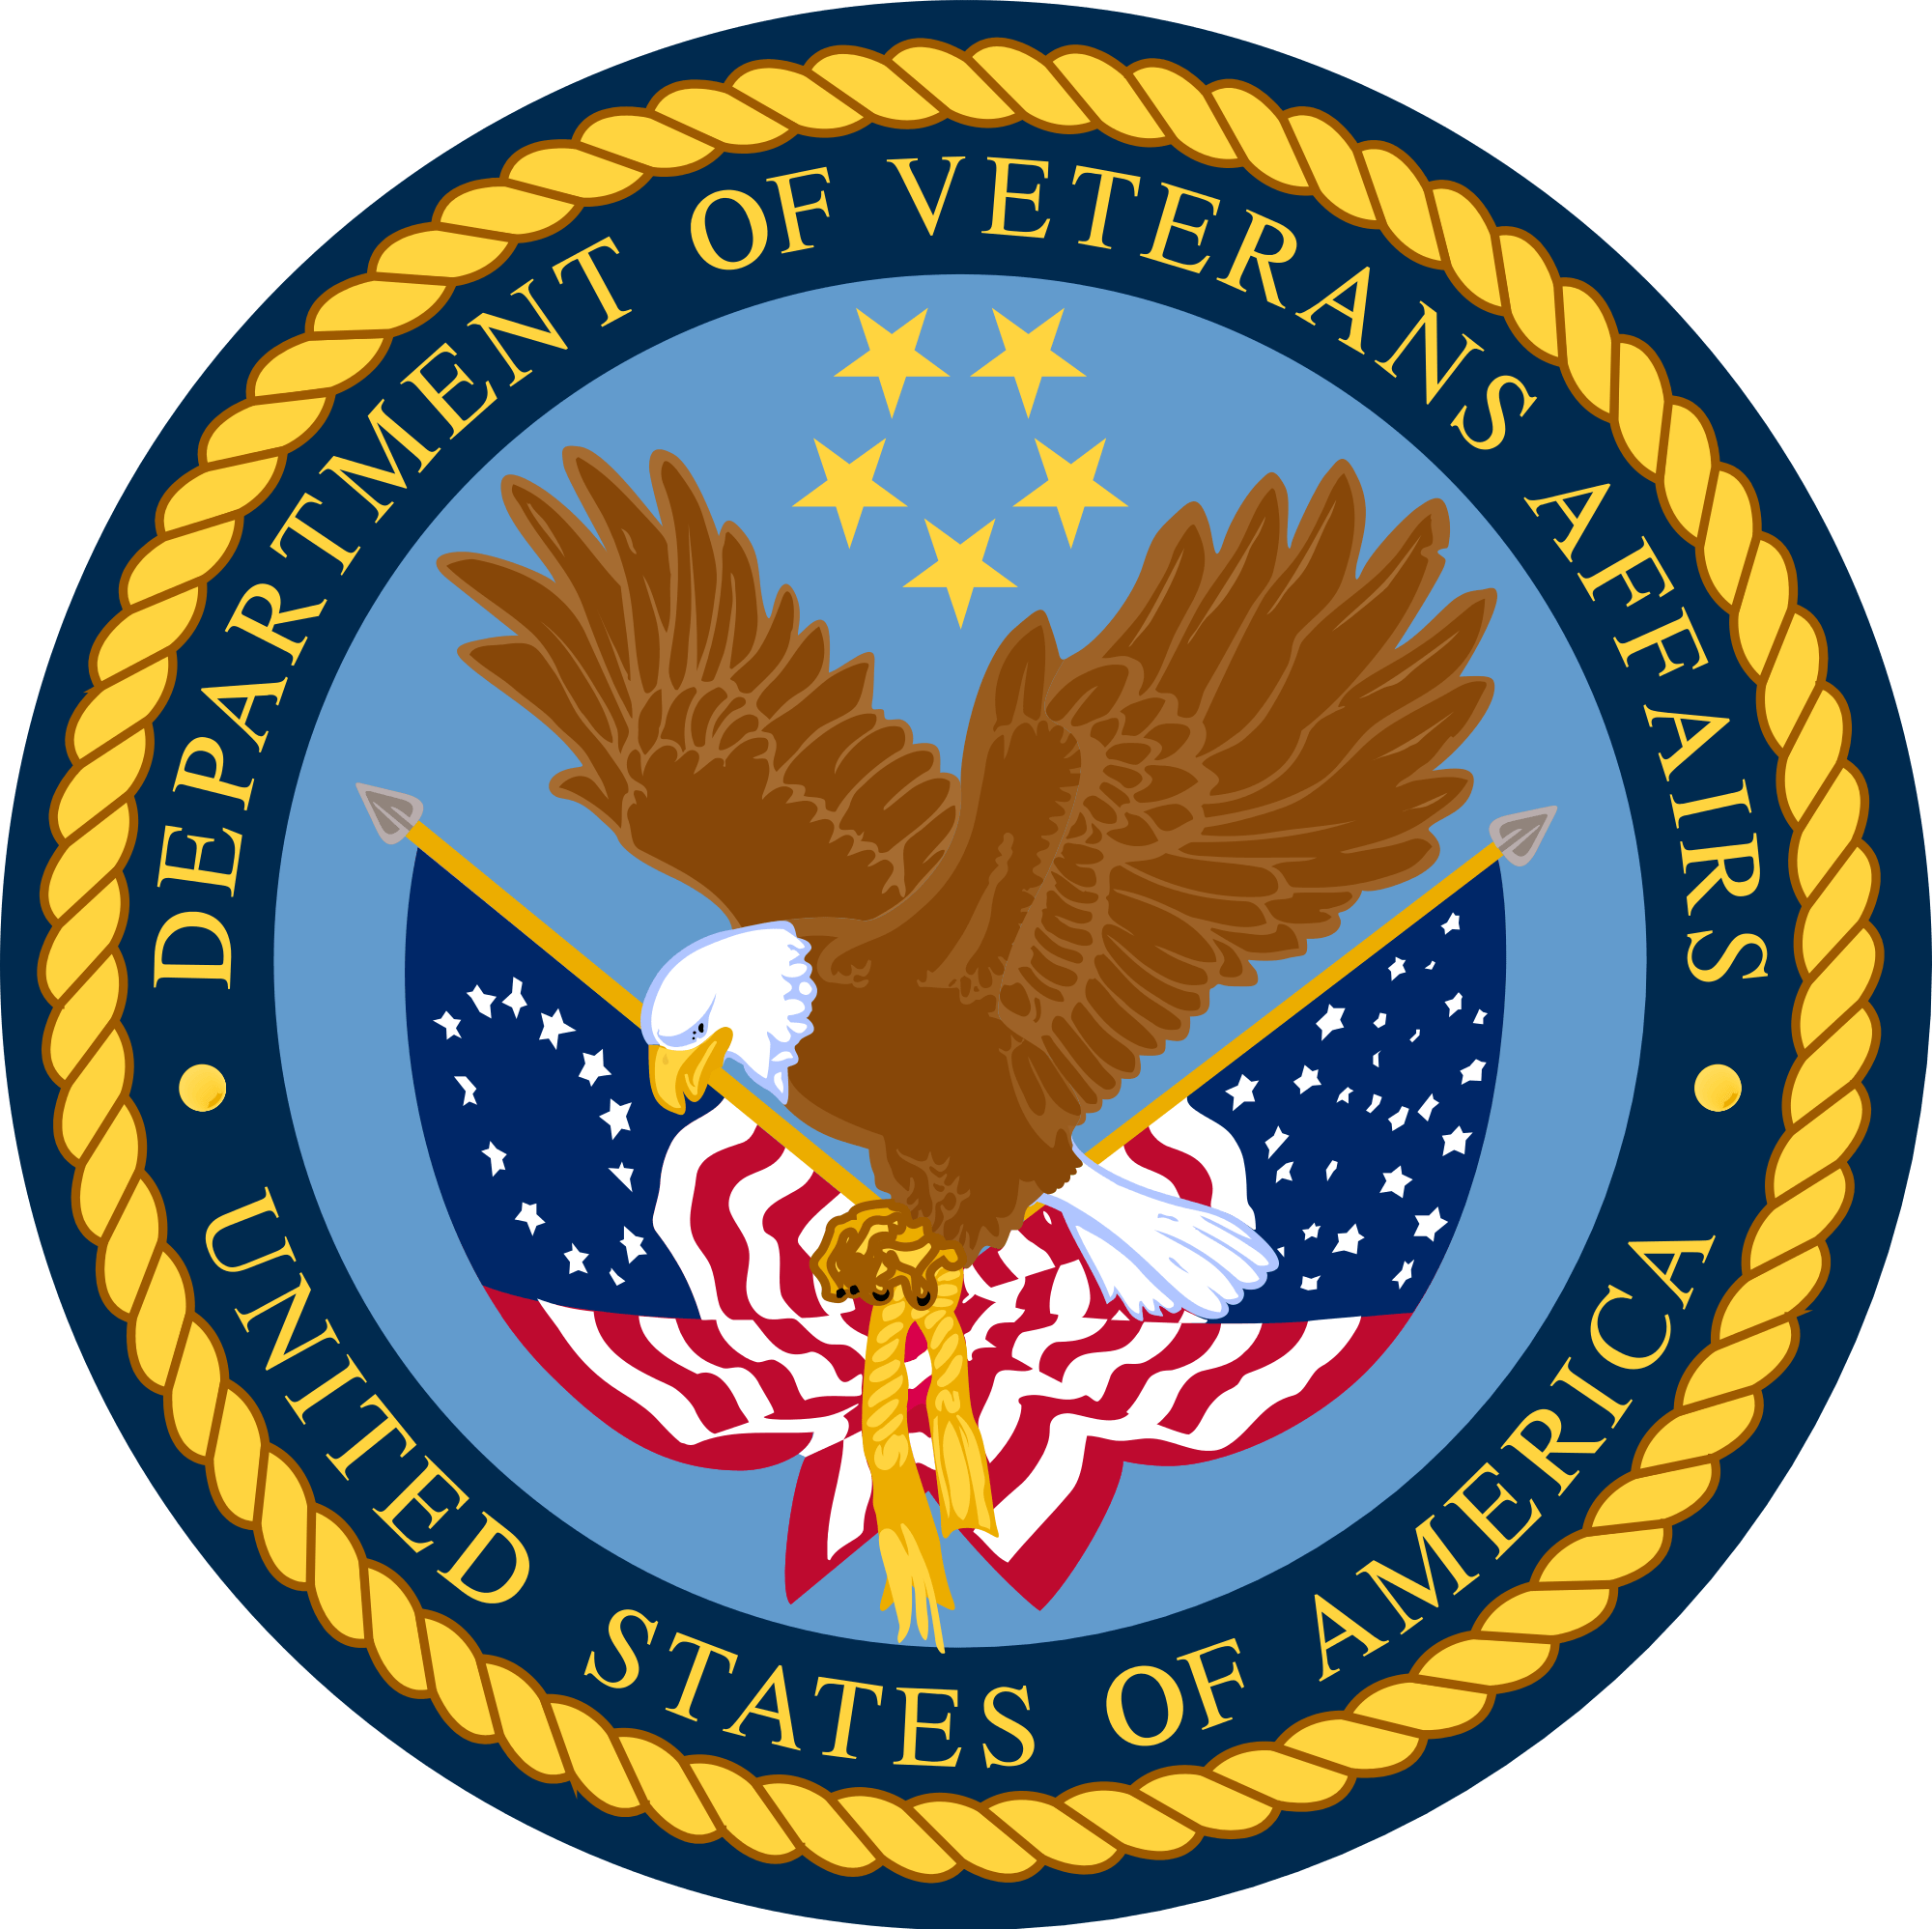 Seal of the United States Department of Veterans Affairs.